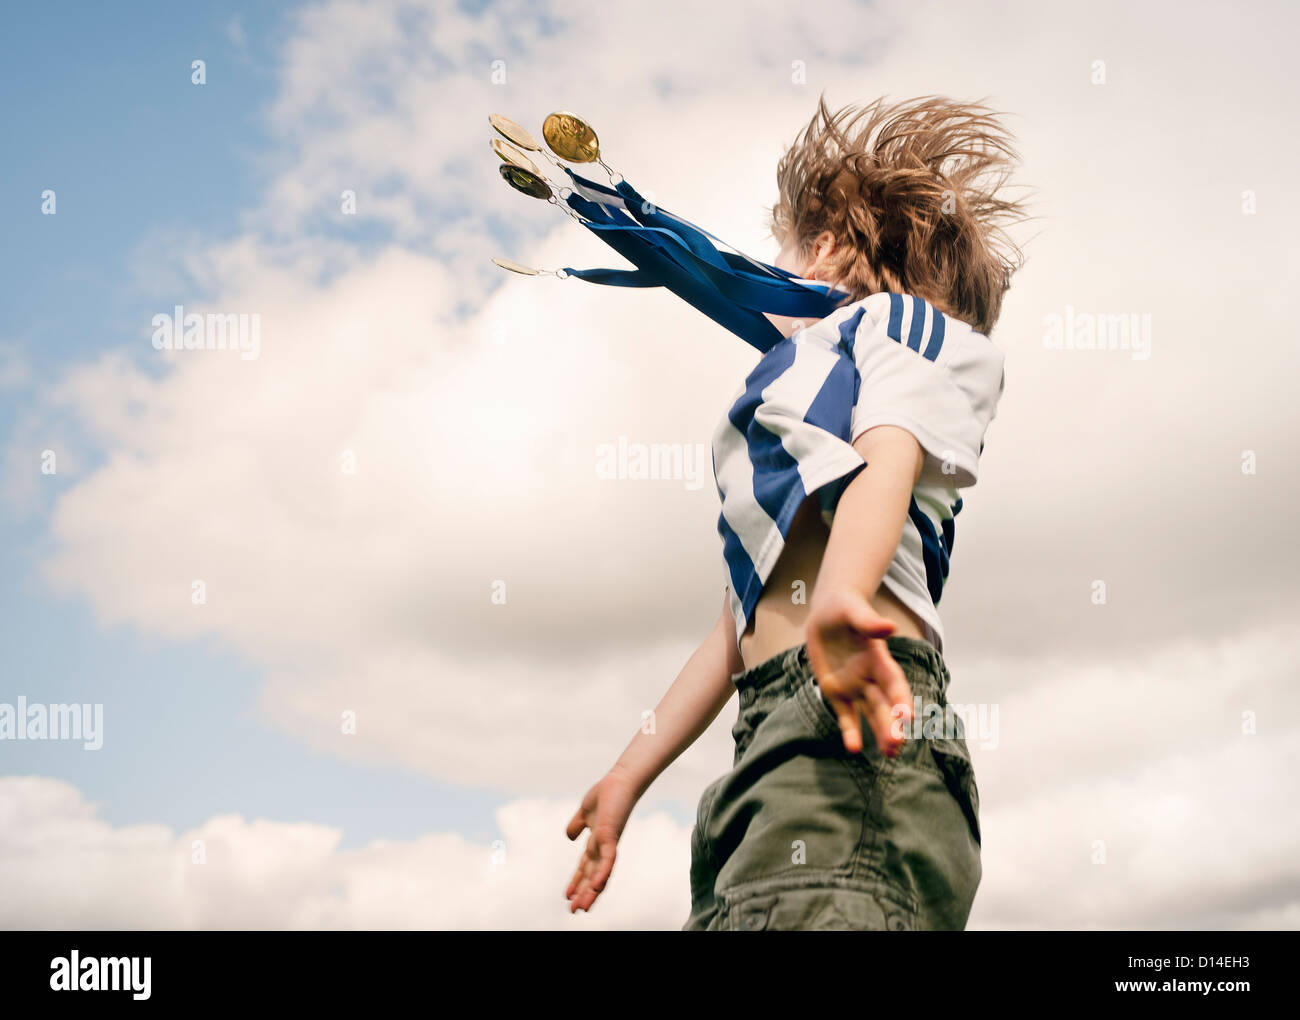 Boy with medals cheering outdoors - Stock Image